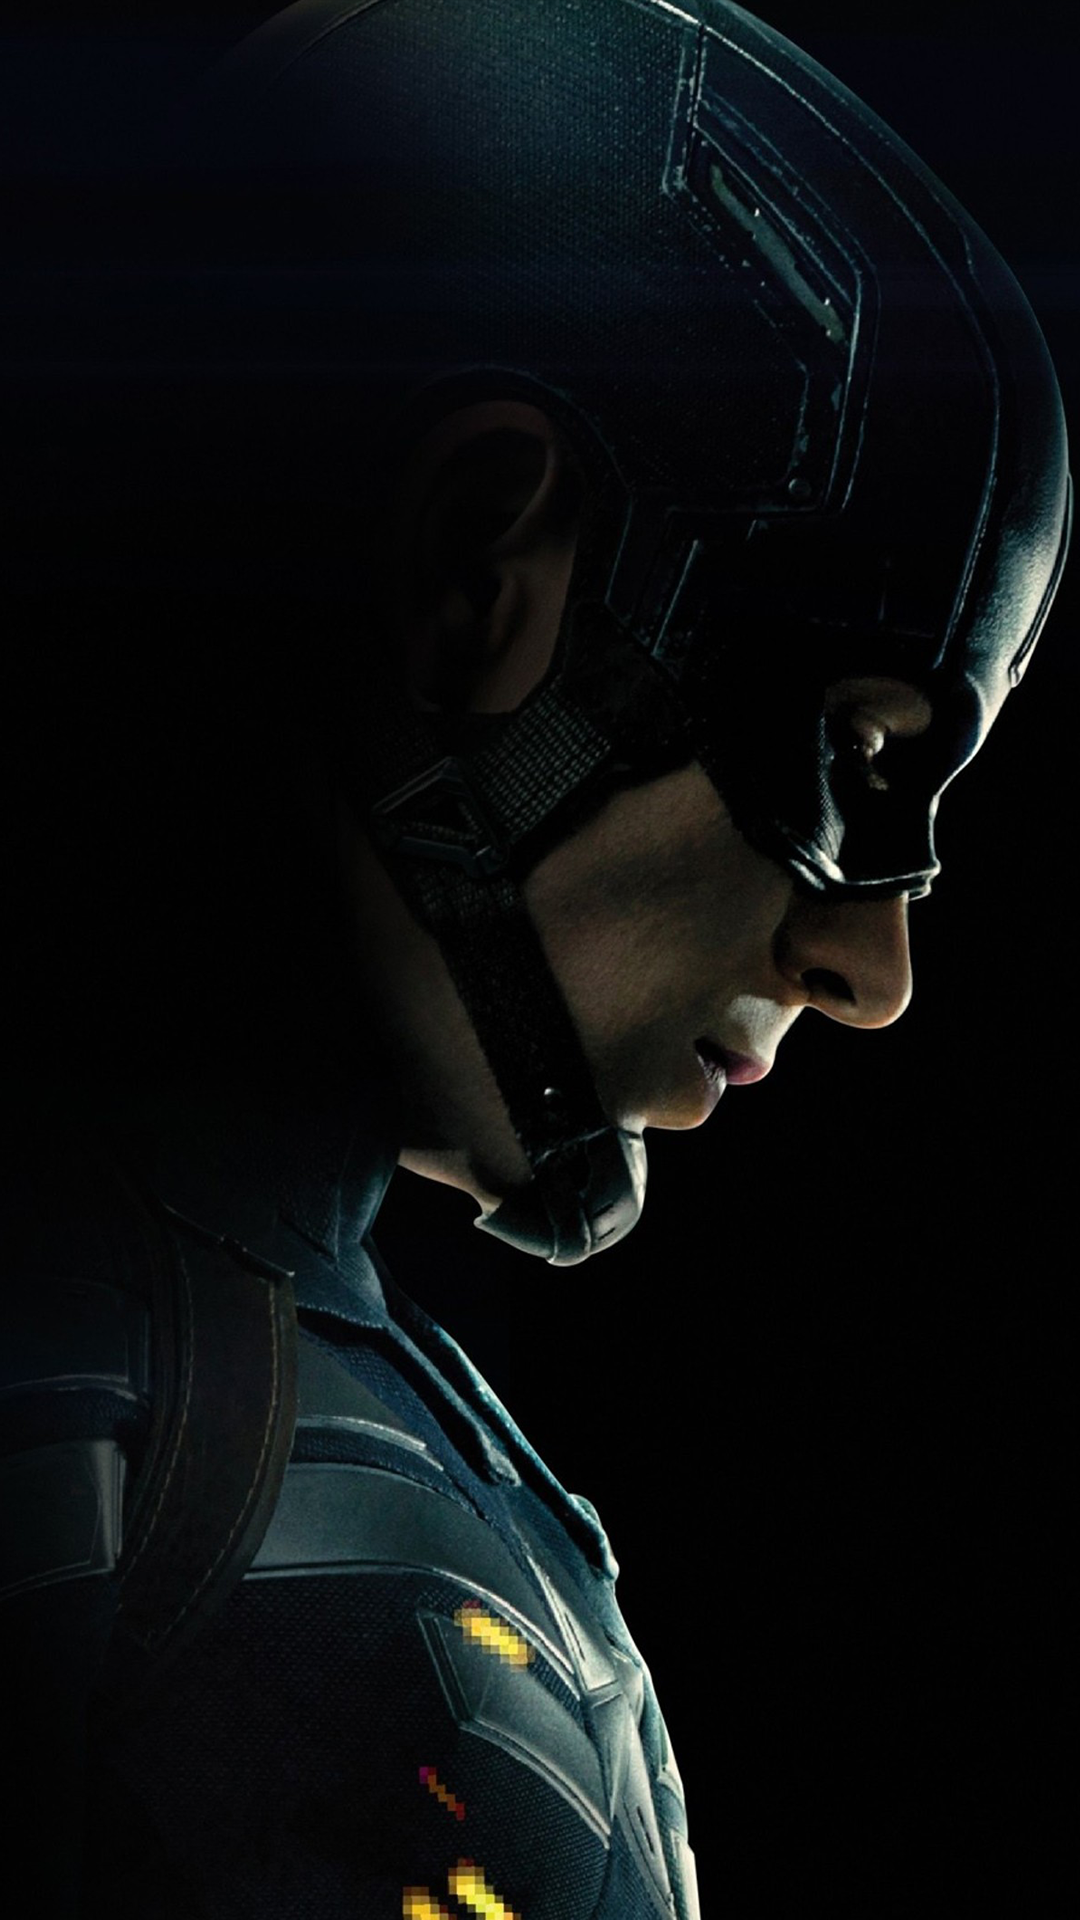 Download our hd captain america hero wallpaper for android - Captain america hd images download ...